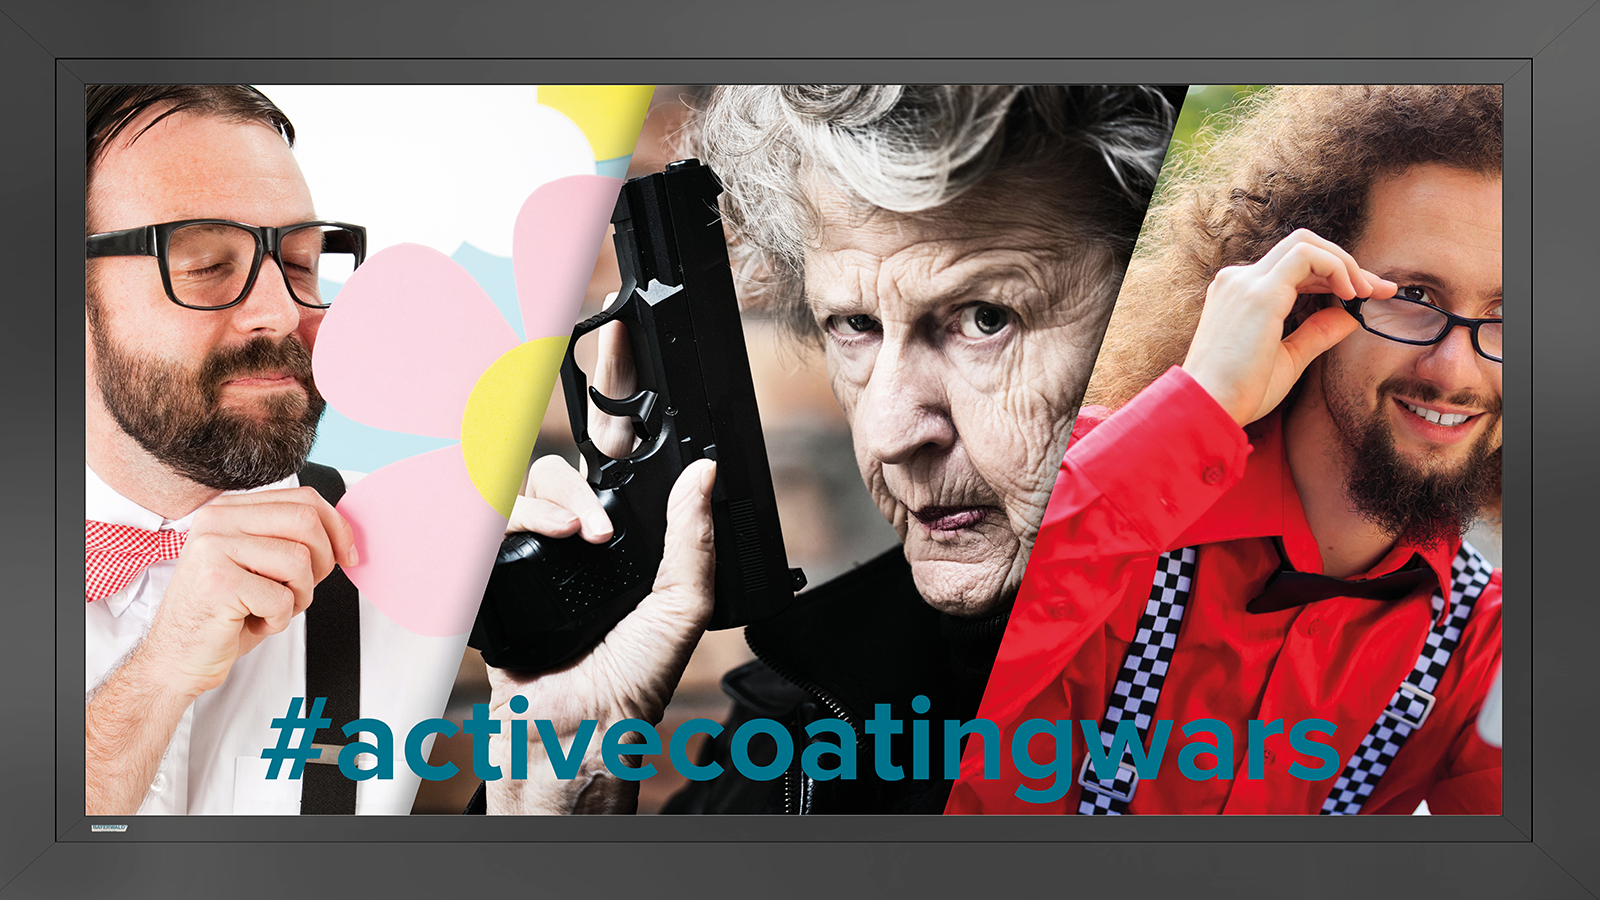 Active Coating